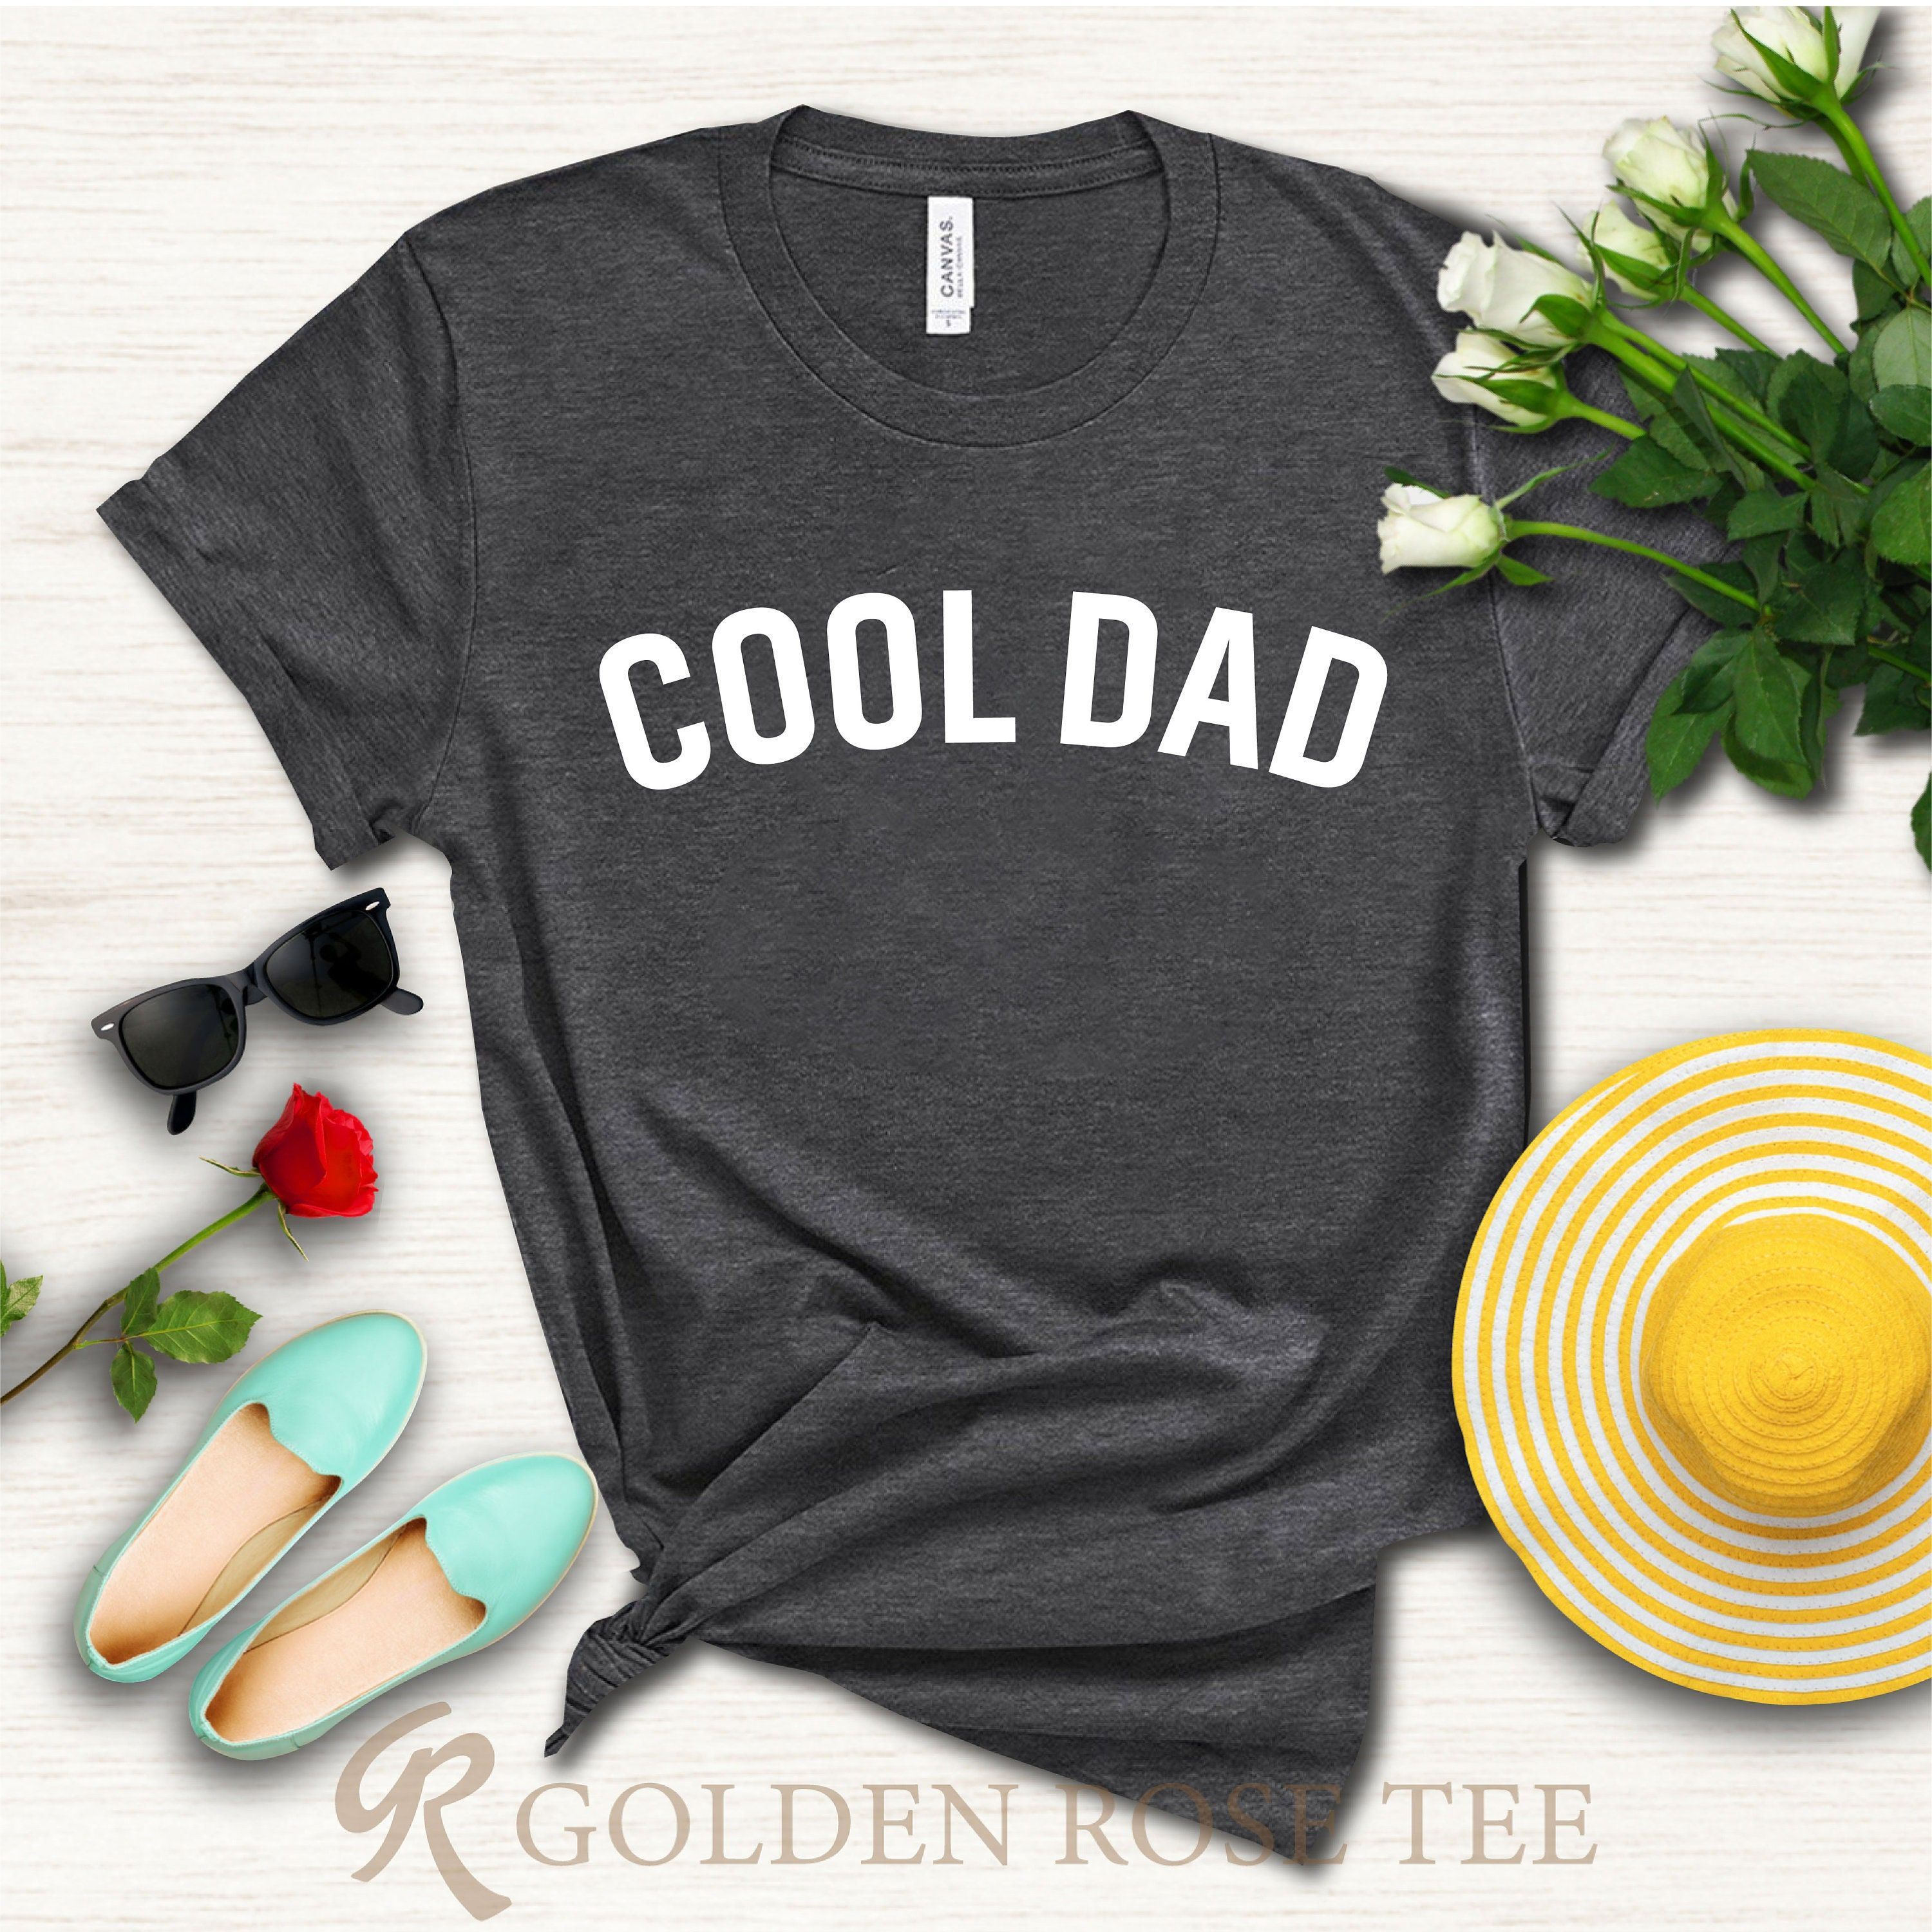 """""""Cool Dad Shirt, Fathers Day Gift, Funny Shirts for Men, Birthday Shirt, Husband Gift, Funny Dad shirt, Father's Day Shirt, Cool shirt When ordering in the baby category, please specify which ones you choose 3-6, 6-12, 12-18 or 18-24 Month. ---How To Order --- 1-) Please, check and review all photos 2-) Choose your t-shirt size and color *Different styles of shirts may have different shades of same color choice due to different manufacturer brands. *For this reason, we recommend you to match shi"""